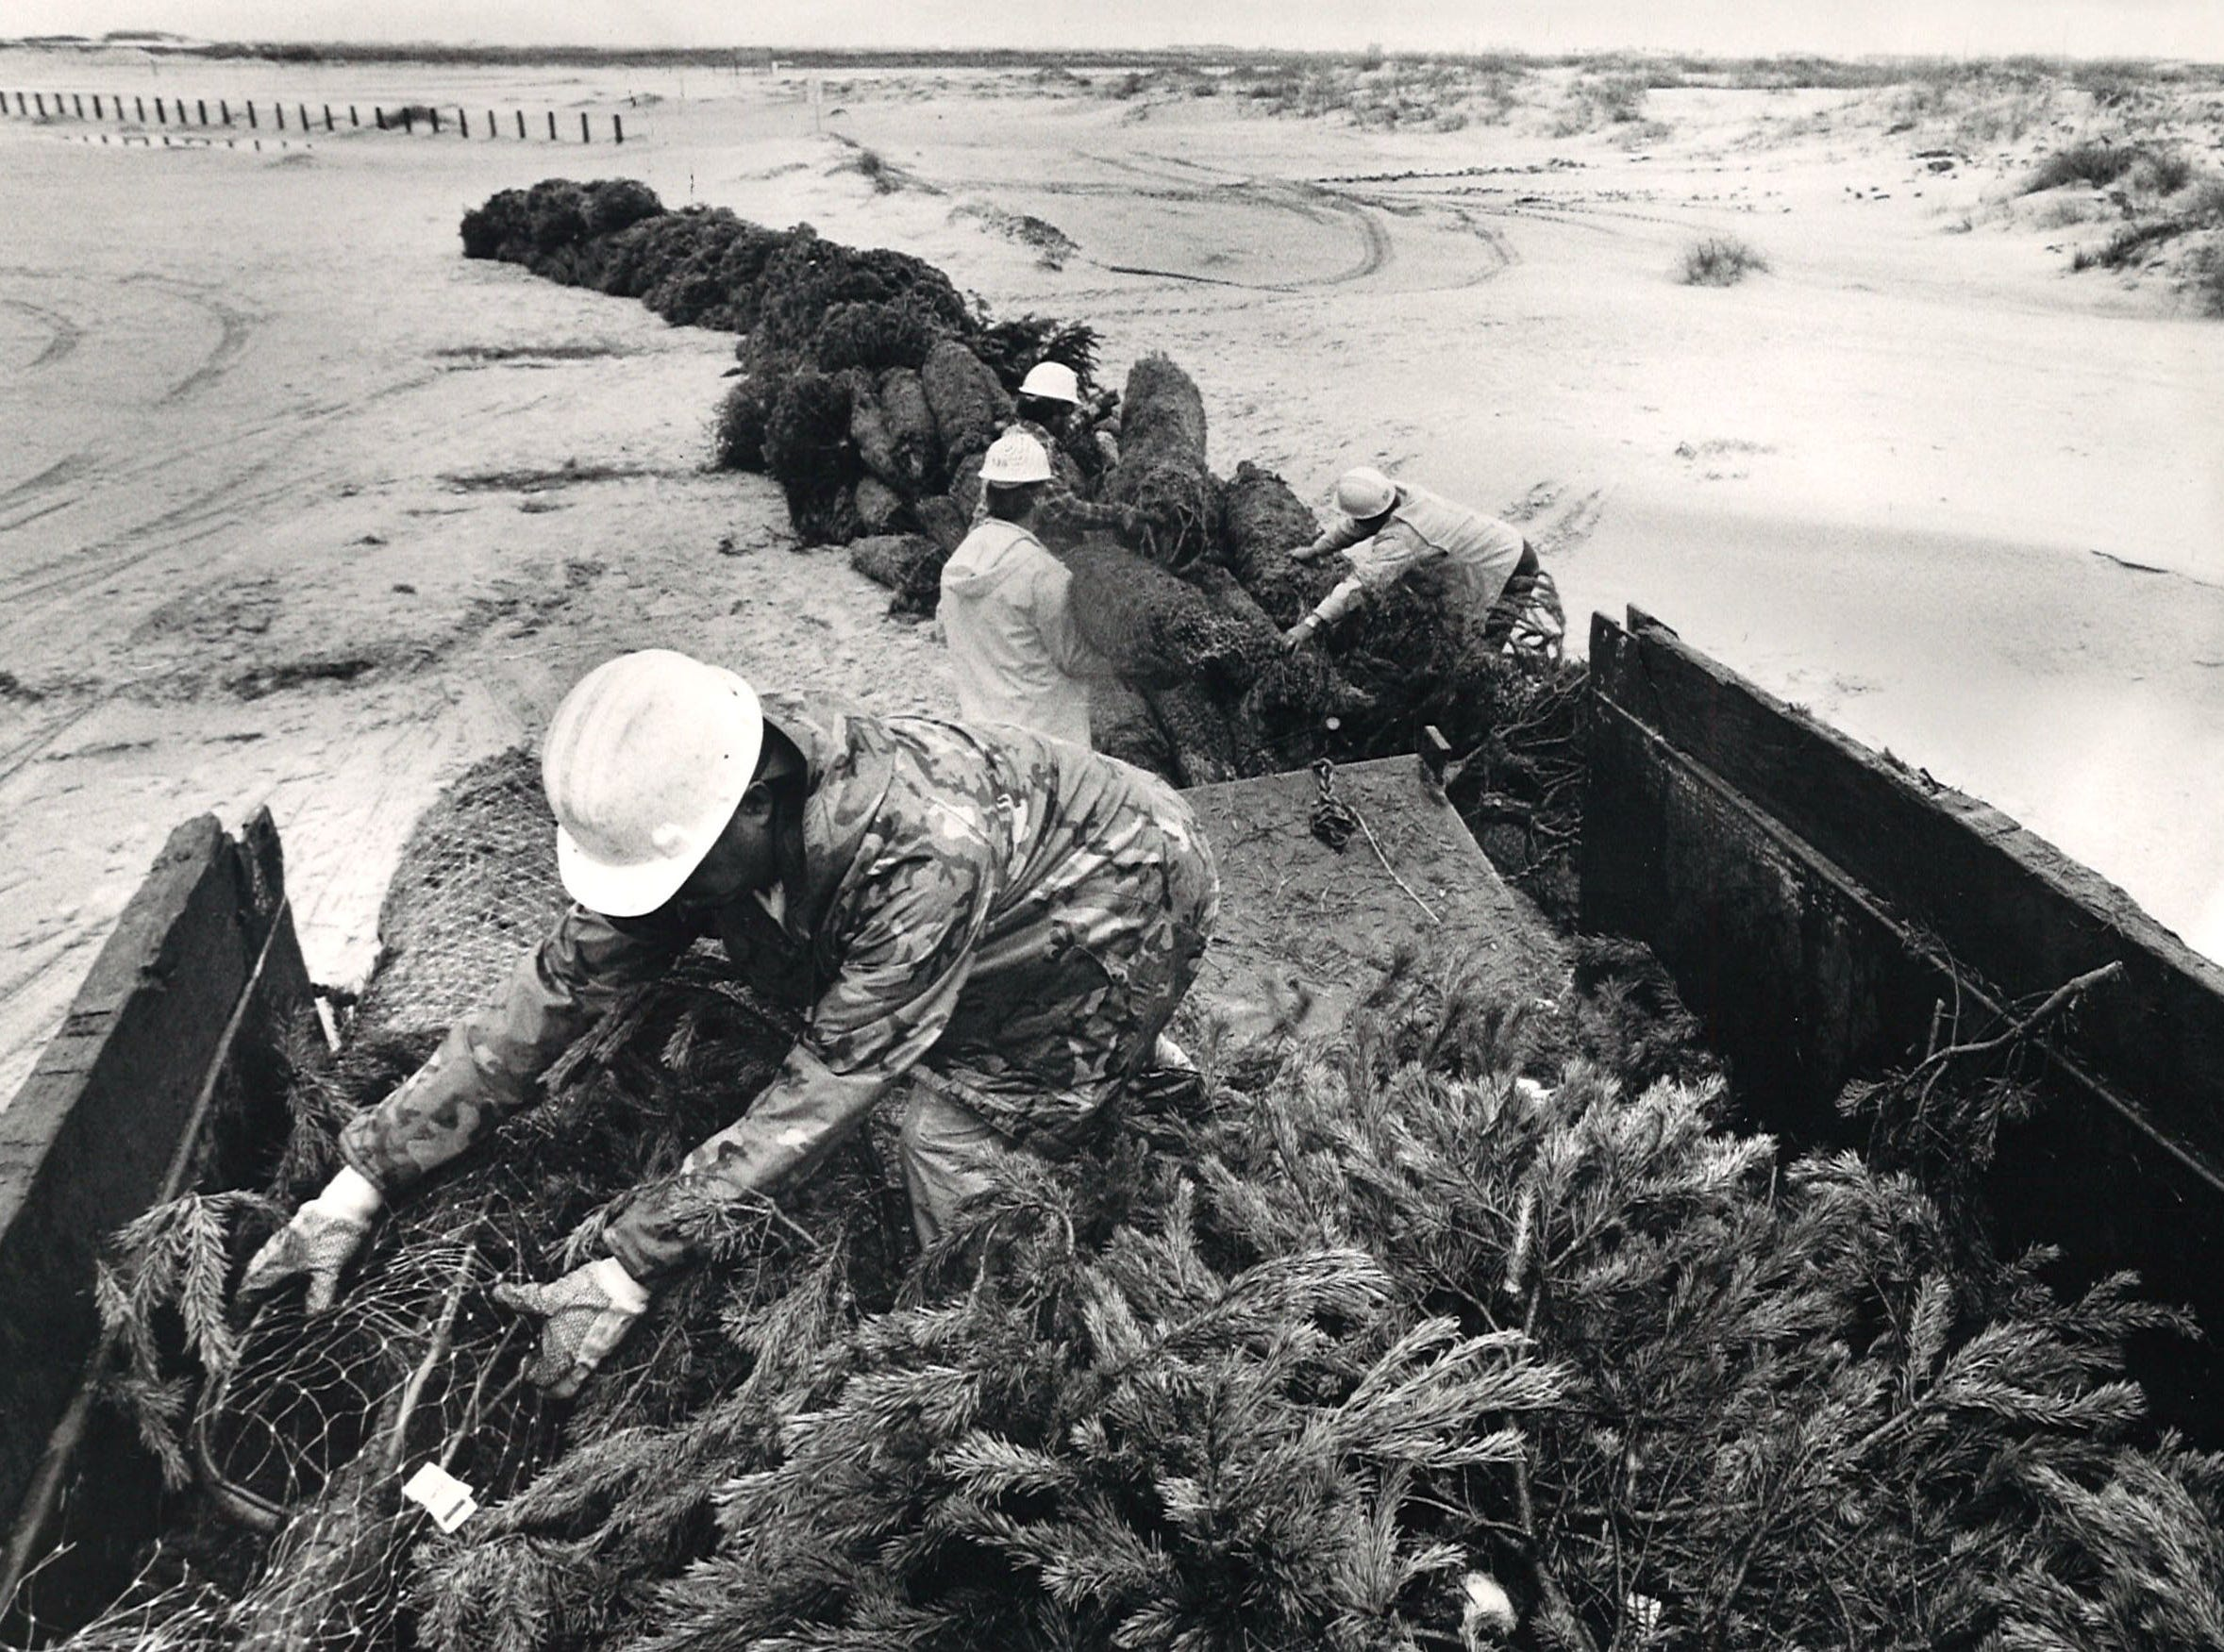 Servando Sosa (foreground), unloads Christmas trees with the help of other Nueces County Road Department workers on Dec. 30, 1986. About 2,000 trees were unloaded on the dunes at Padre Island.